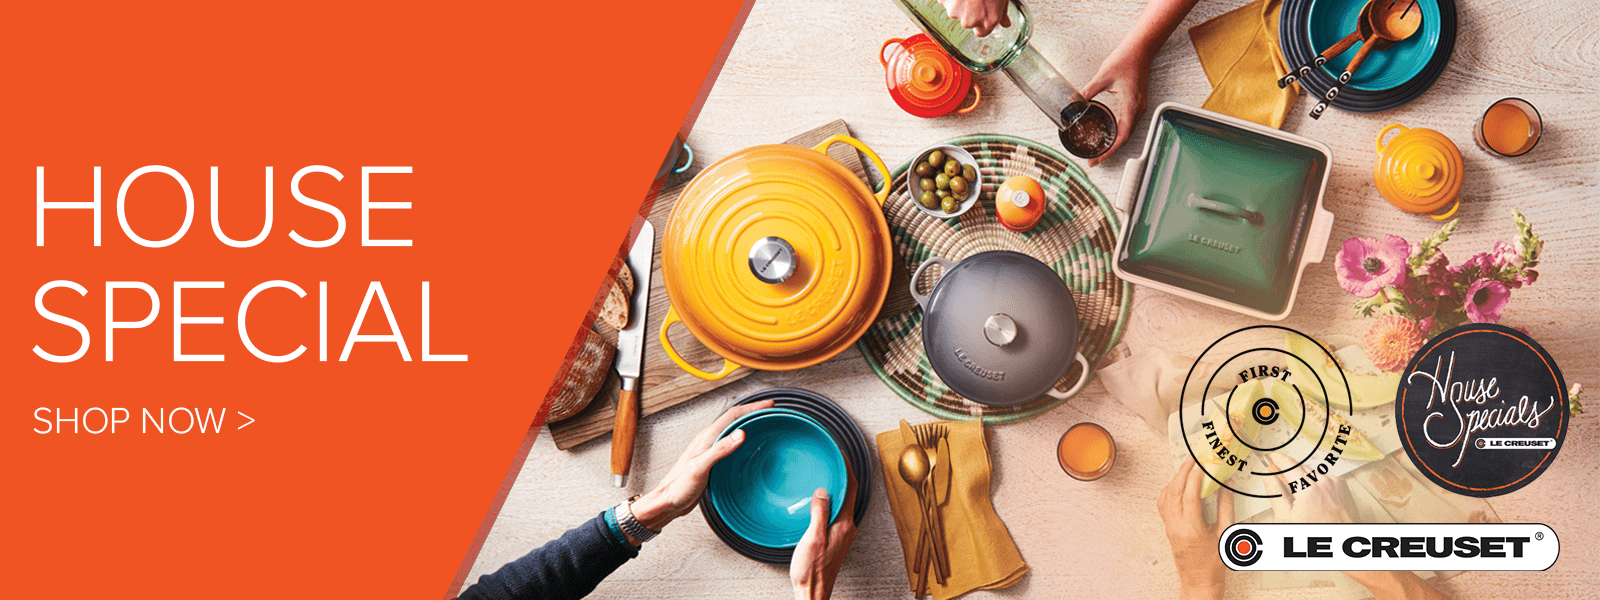 DASALLAS LE CREUSET HOUSE SPECIALS